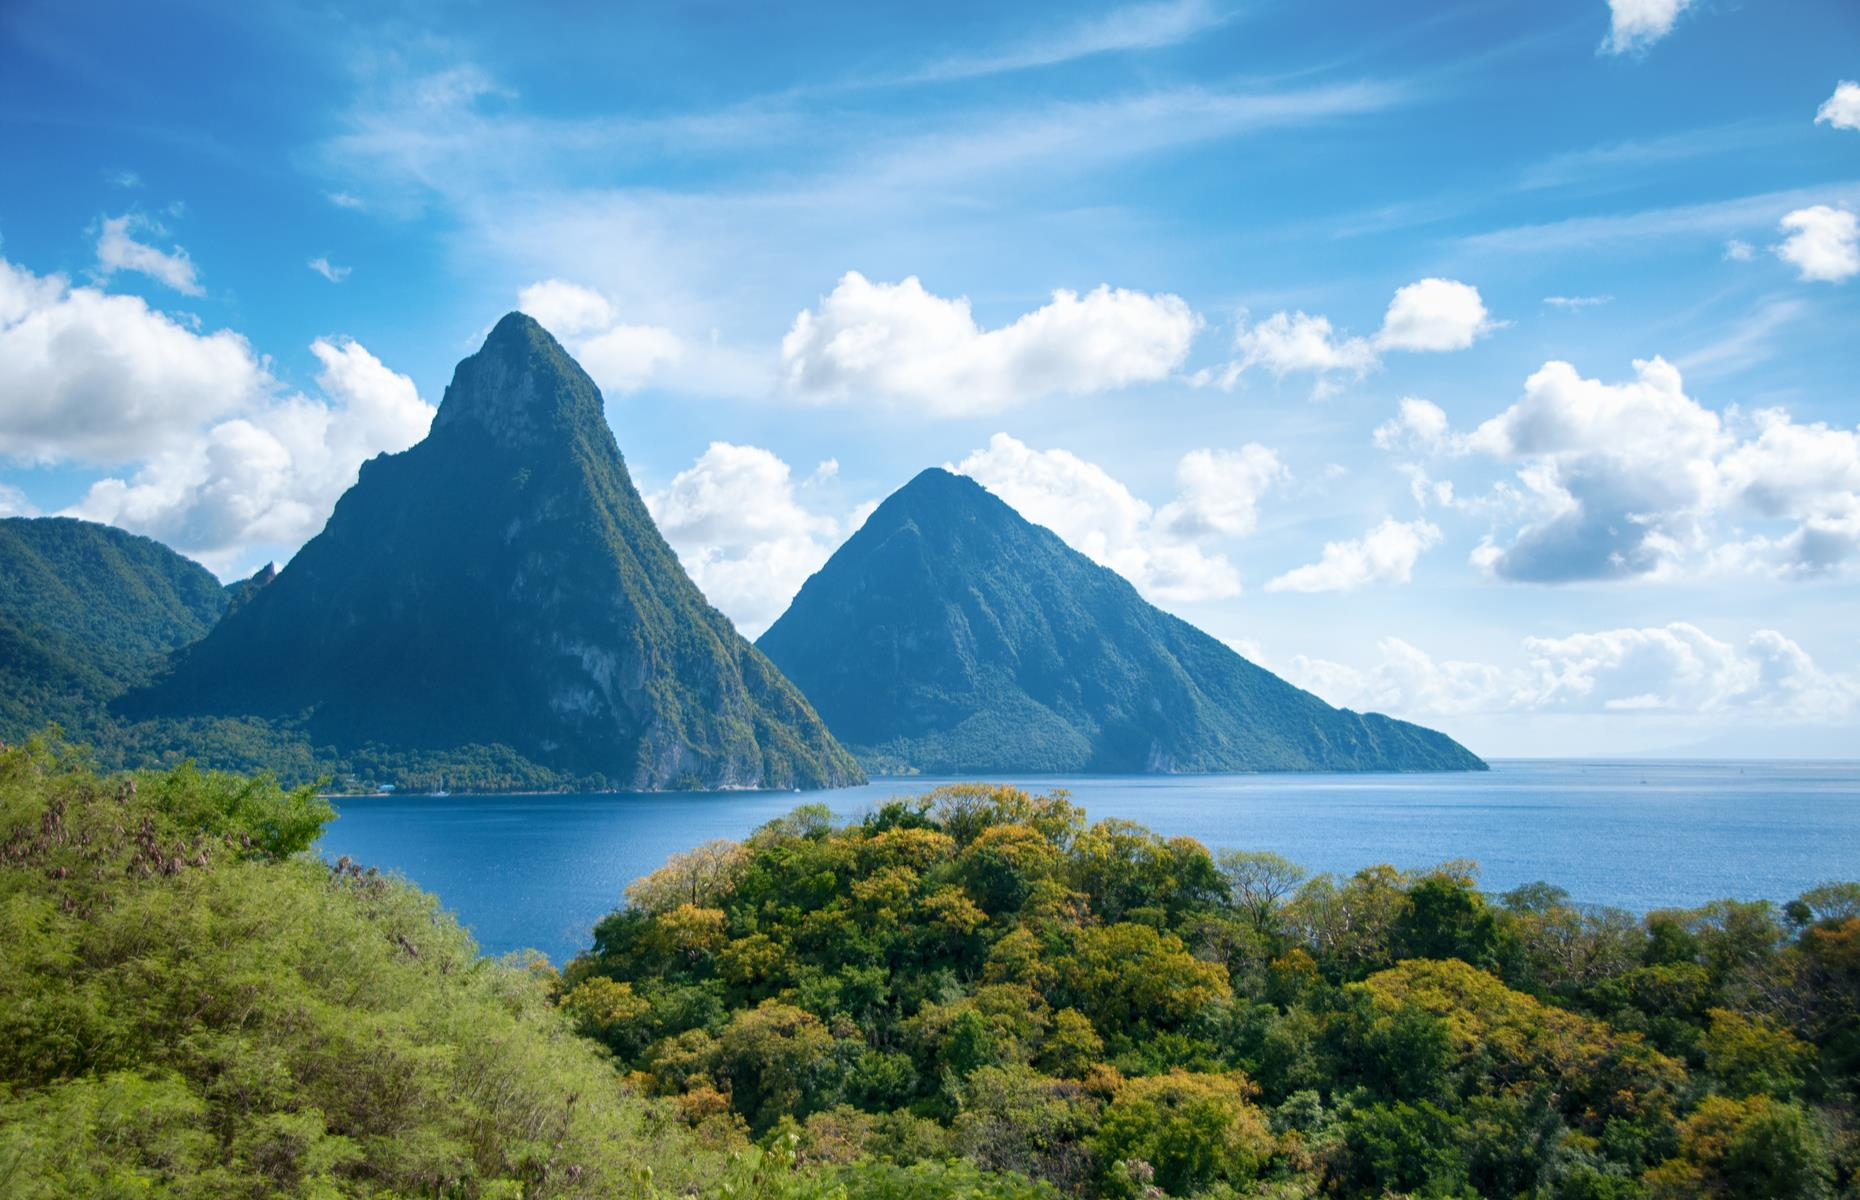 Slide 3 of 31: An unmistakable sight in St Lucia, The Pitons are one of the island's best-known views. The two volcanic plugs are now covered in a dense green jungle and the Pitons – Gros Piton and Petit Piton – are home to no less than 245 different plant species, including eight rare tree species, and 27 bird species, five of them endemic.